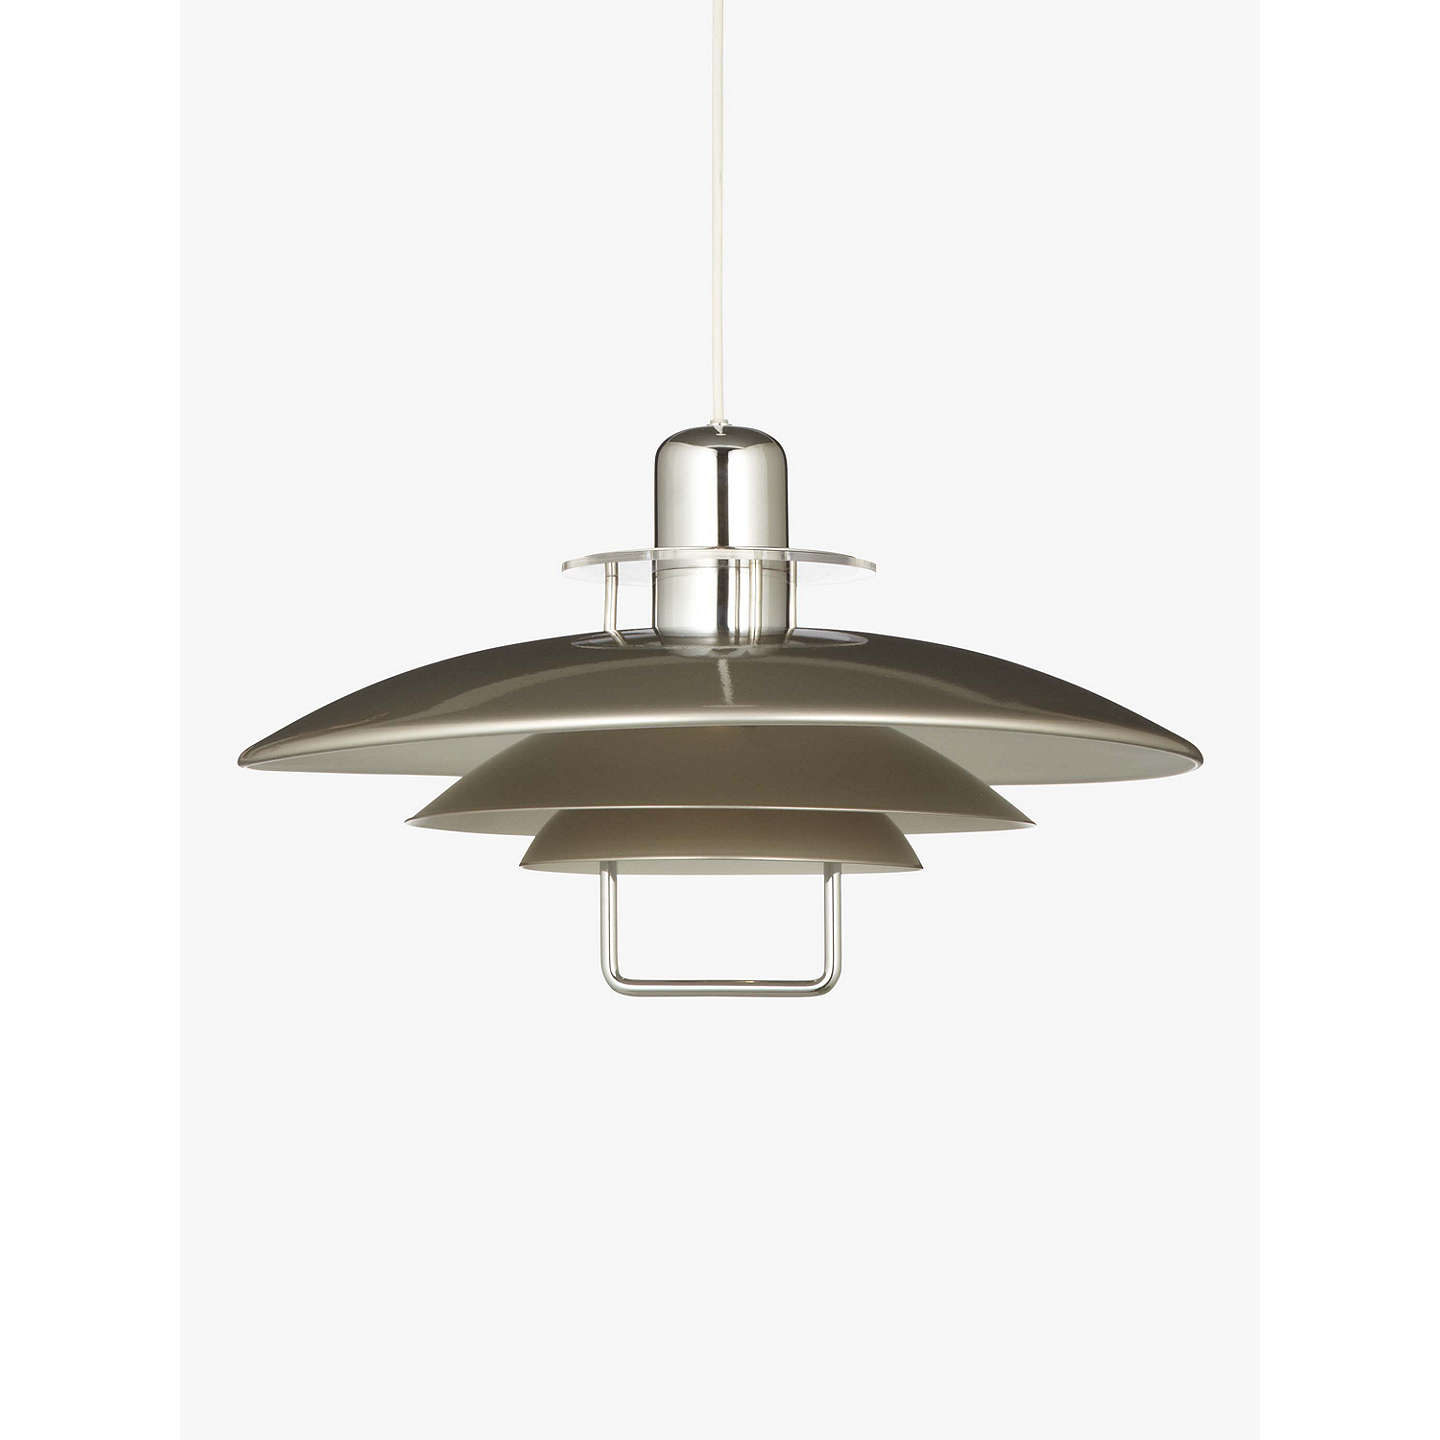 Belid Felix Rise And Fall Ceiling Light Satin Nickel At